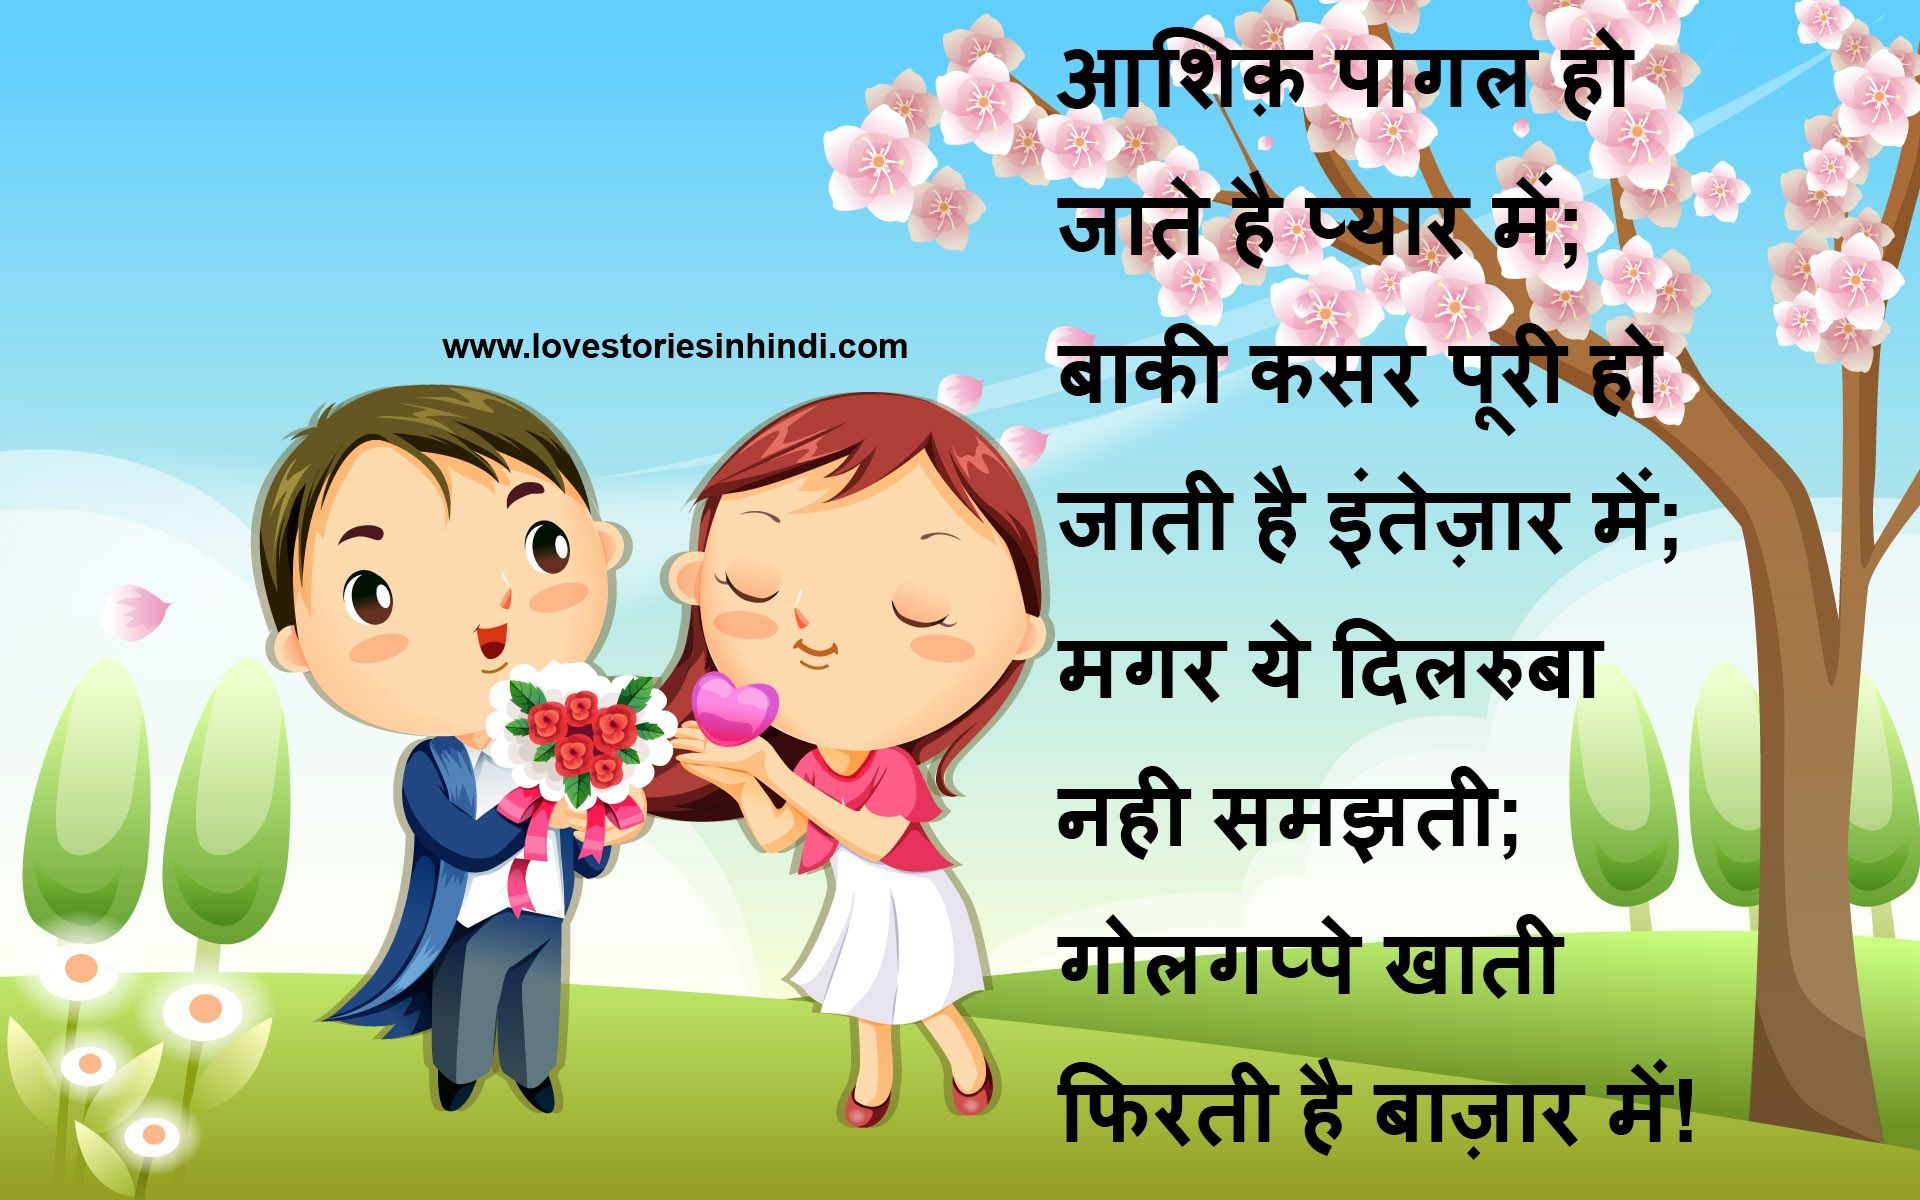 Funny Love Quotes For Girlfriend In Hindi Cso4iwedc Famous Quotes